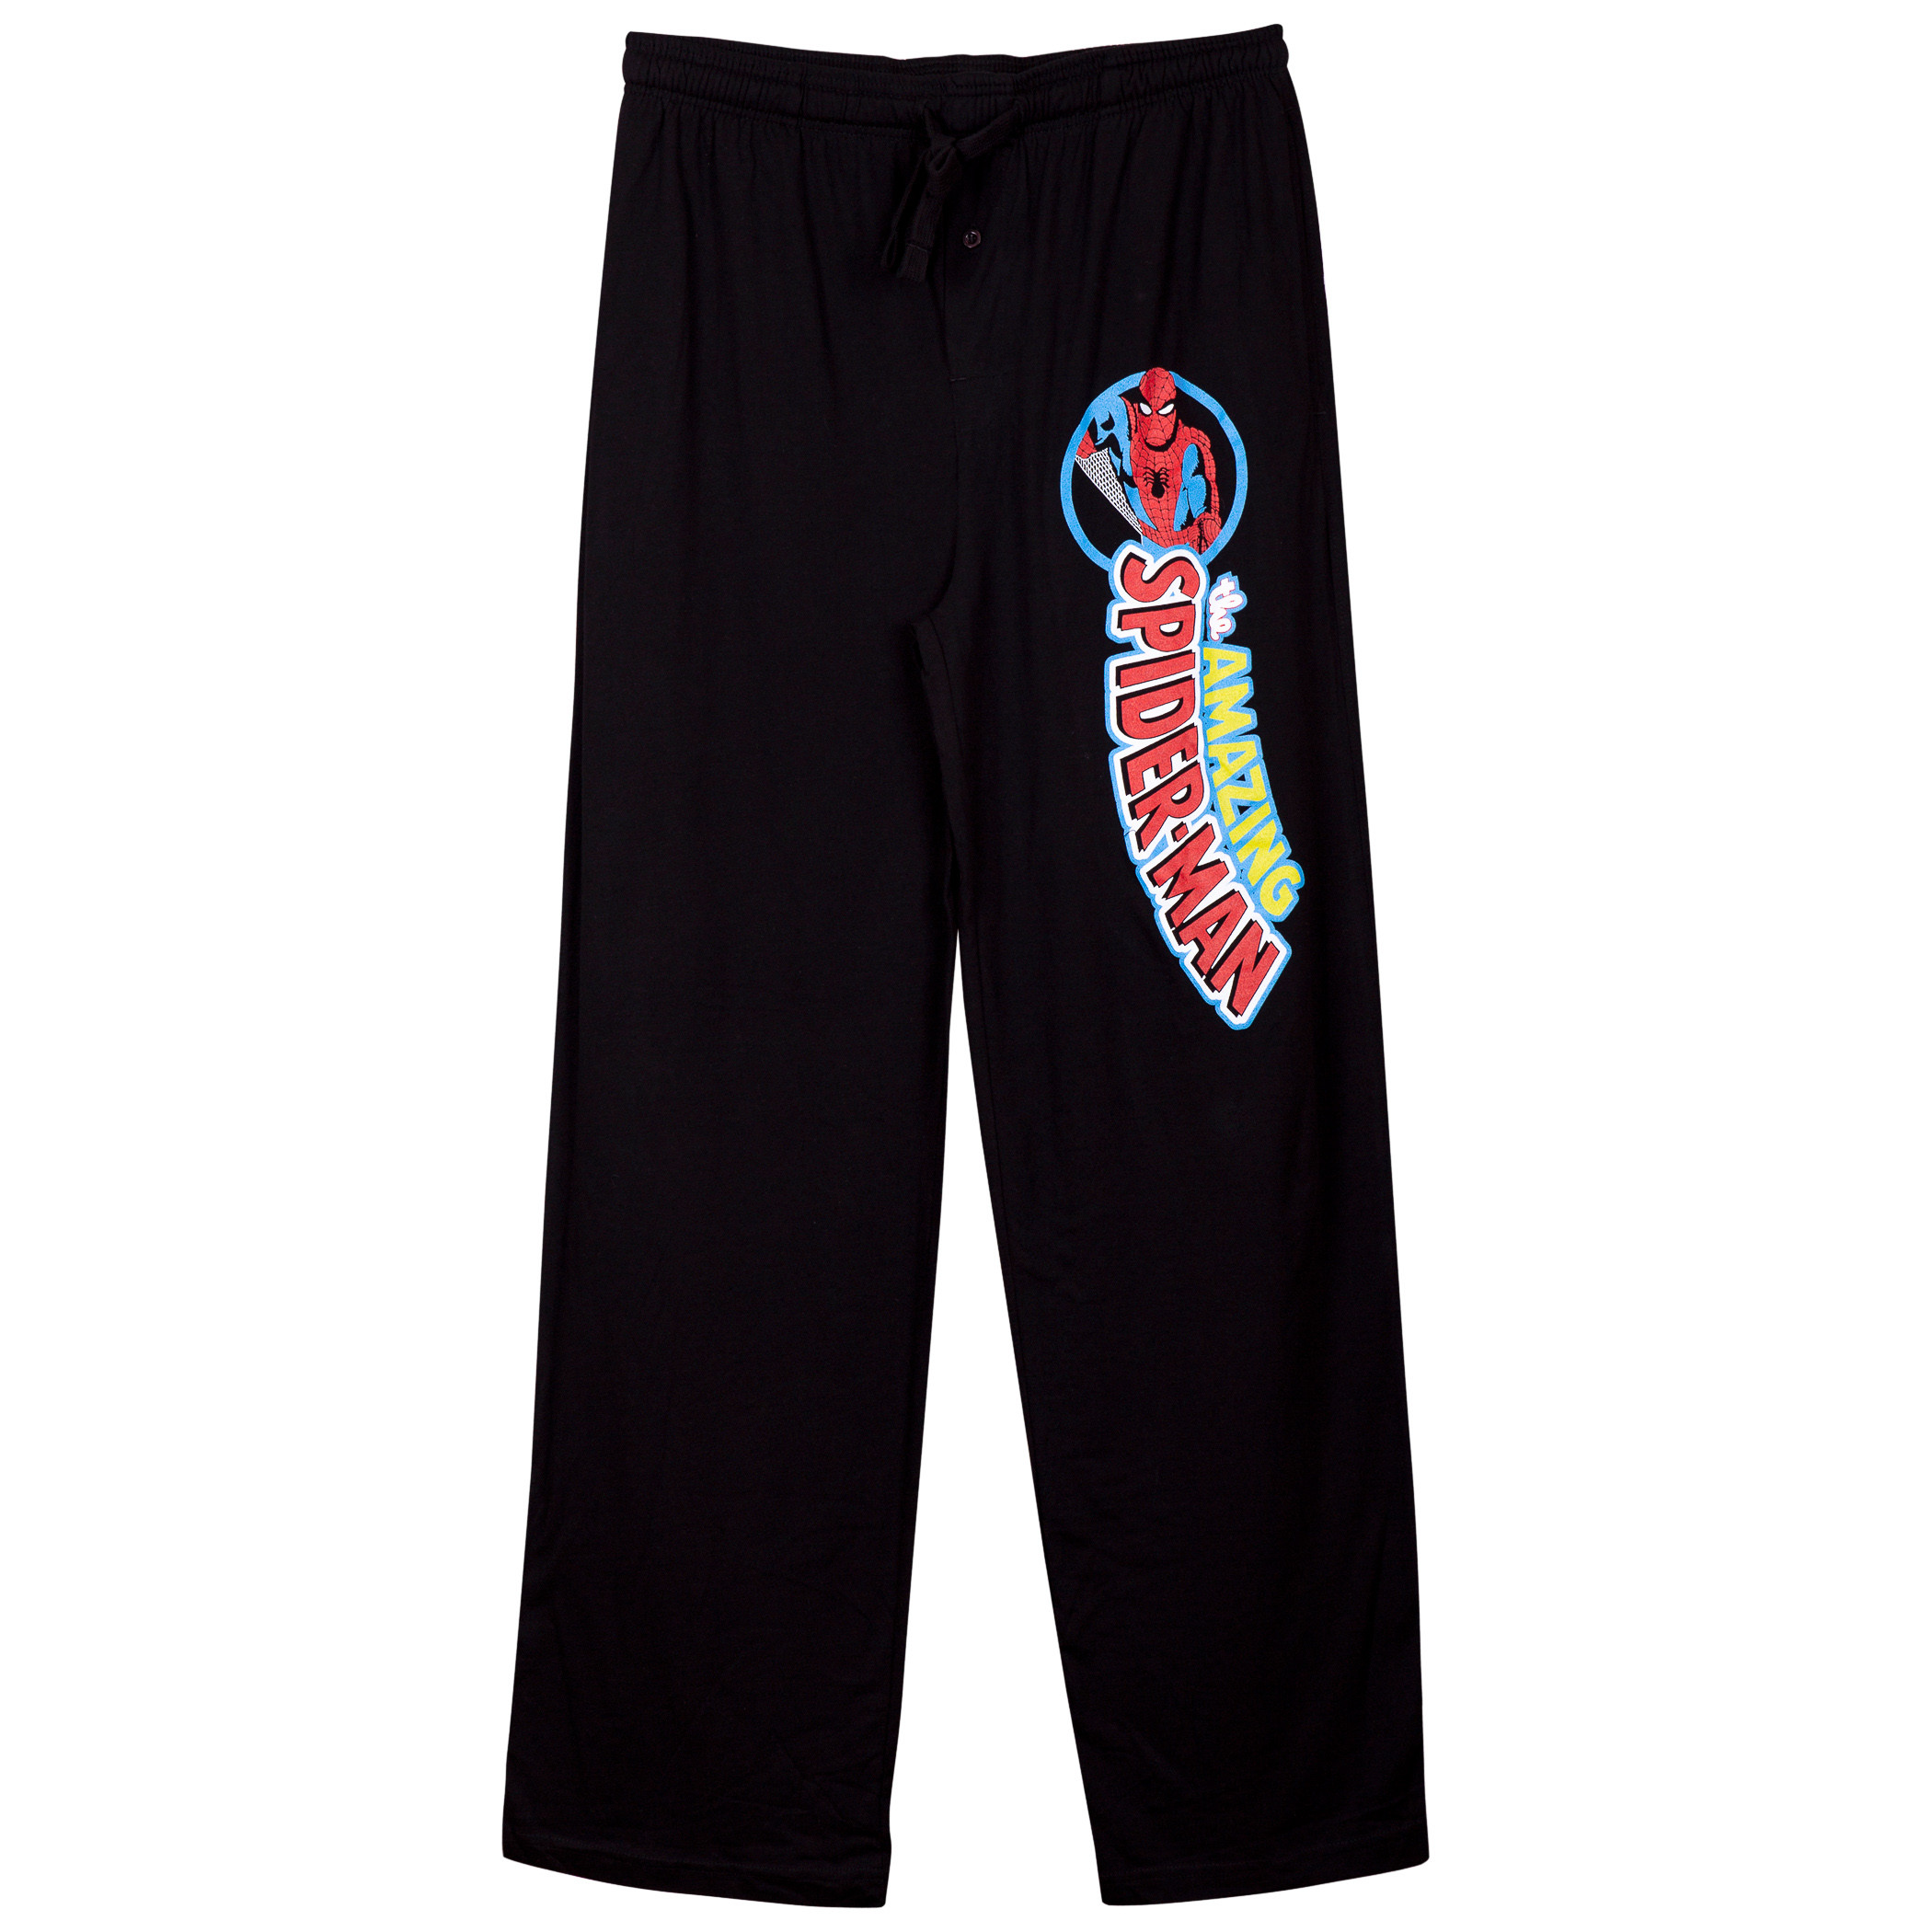 Amazing Spider-Man Unisex Pajama Pants